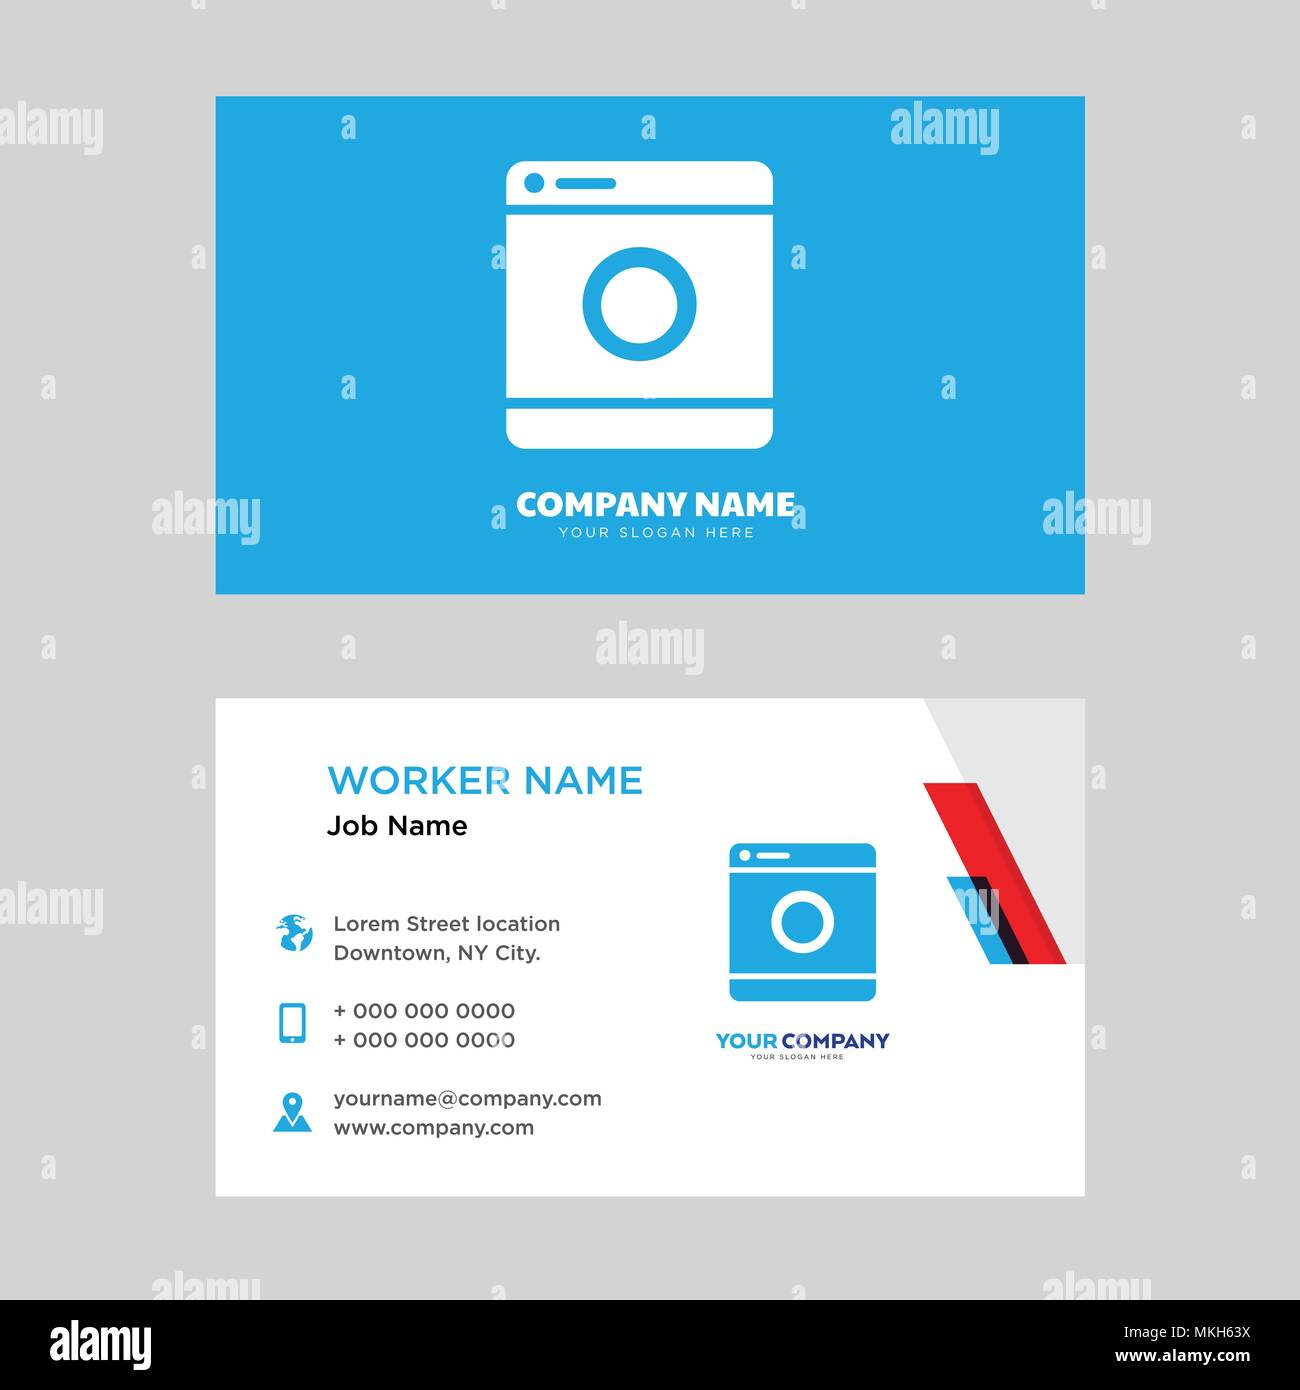 Washing machine business card design template, Visiting for